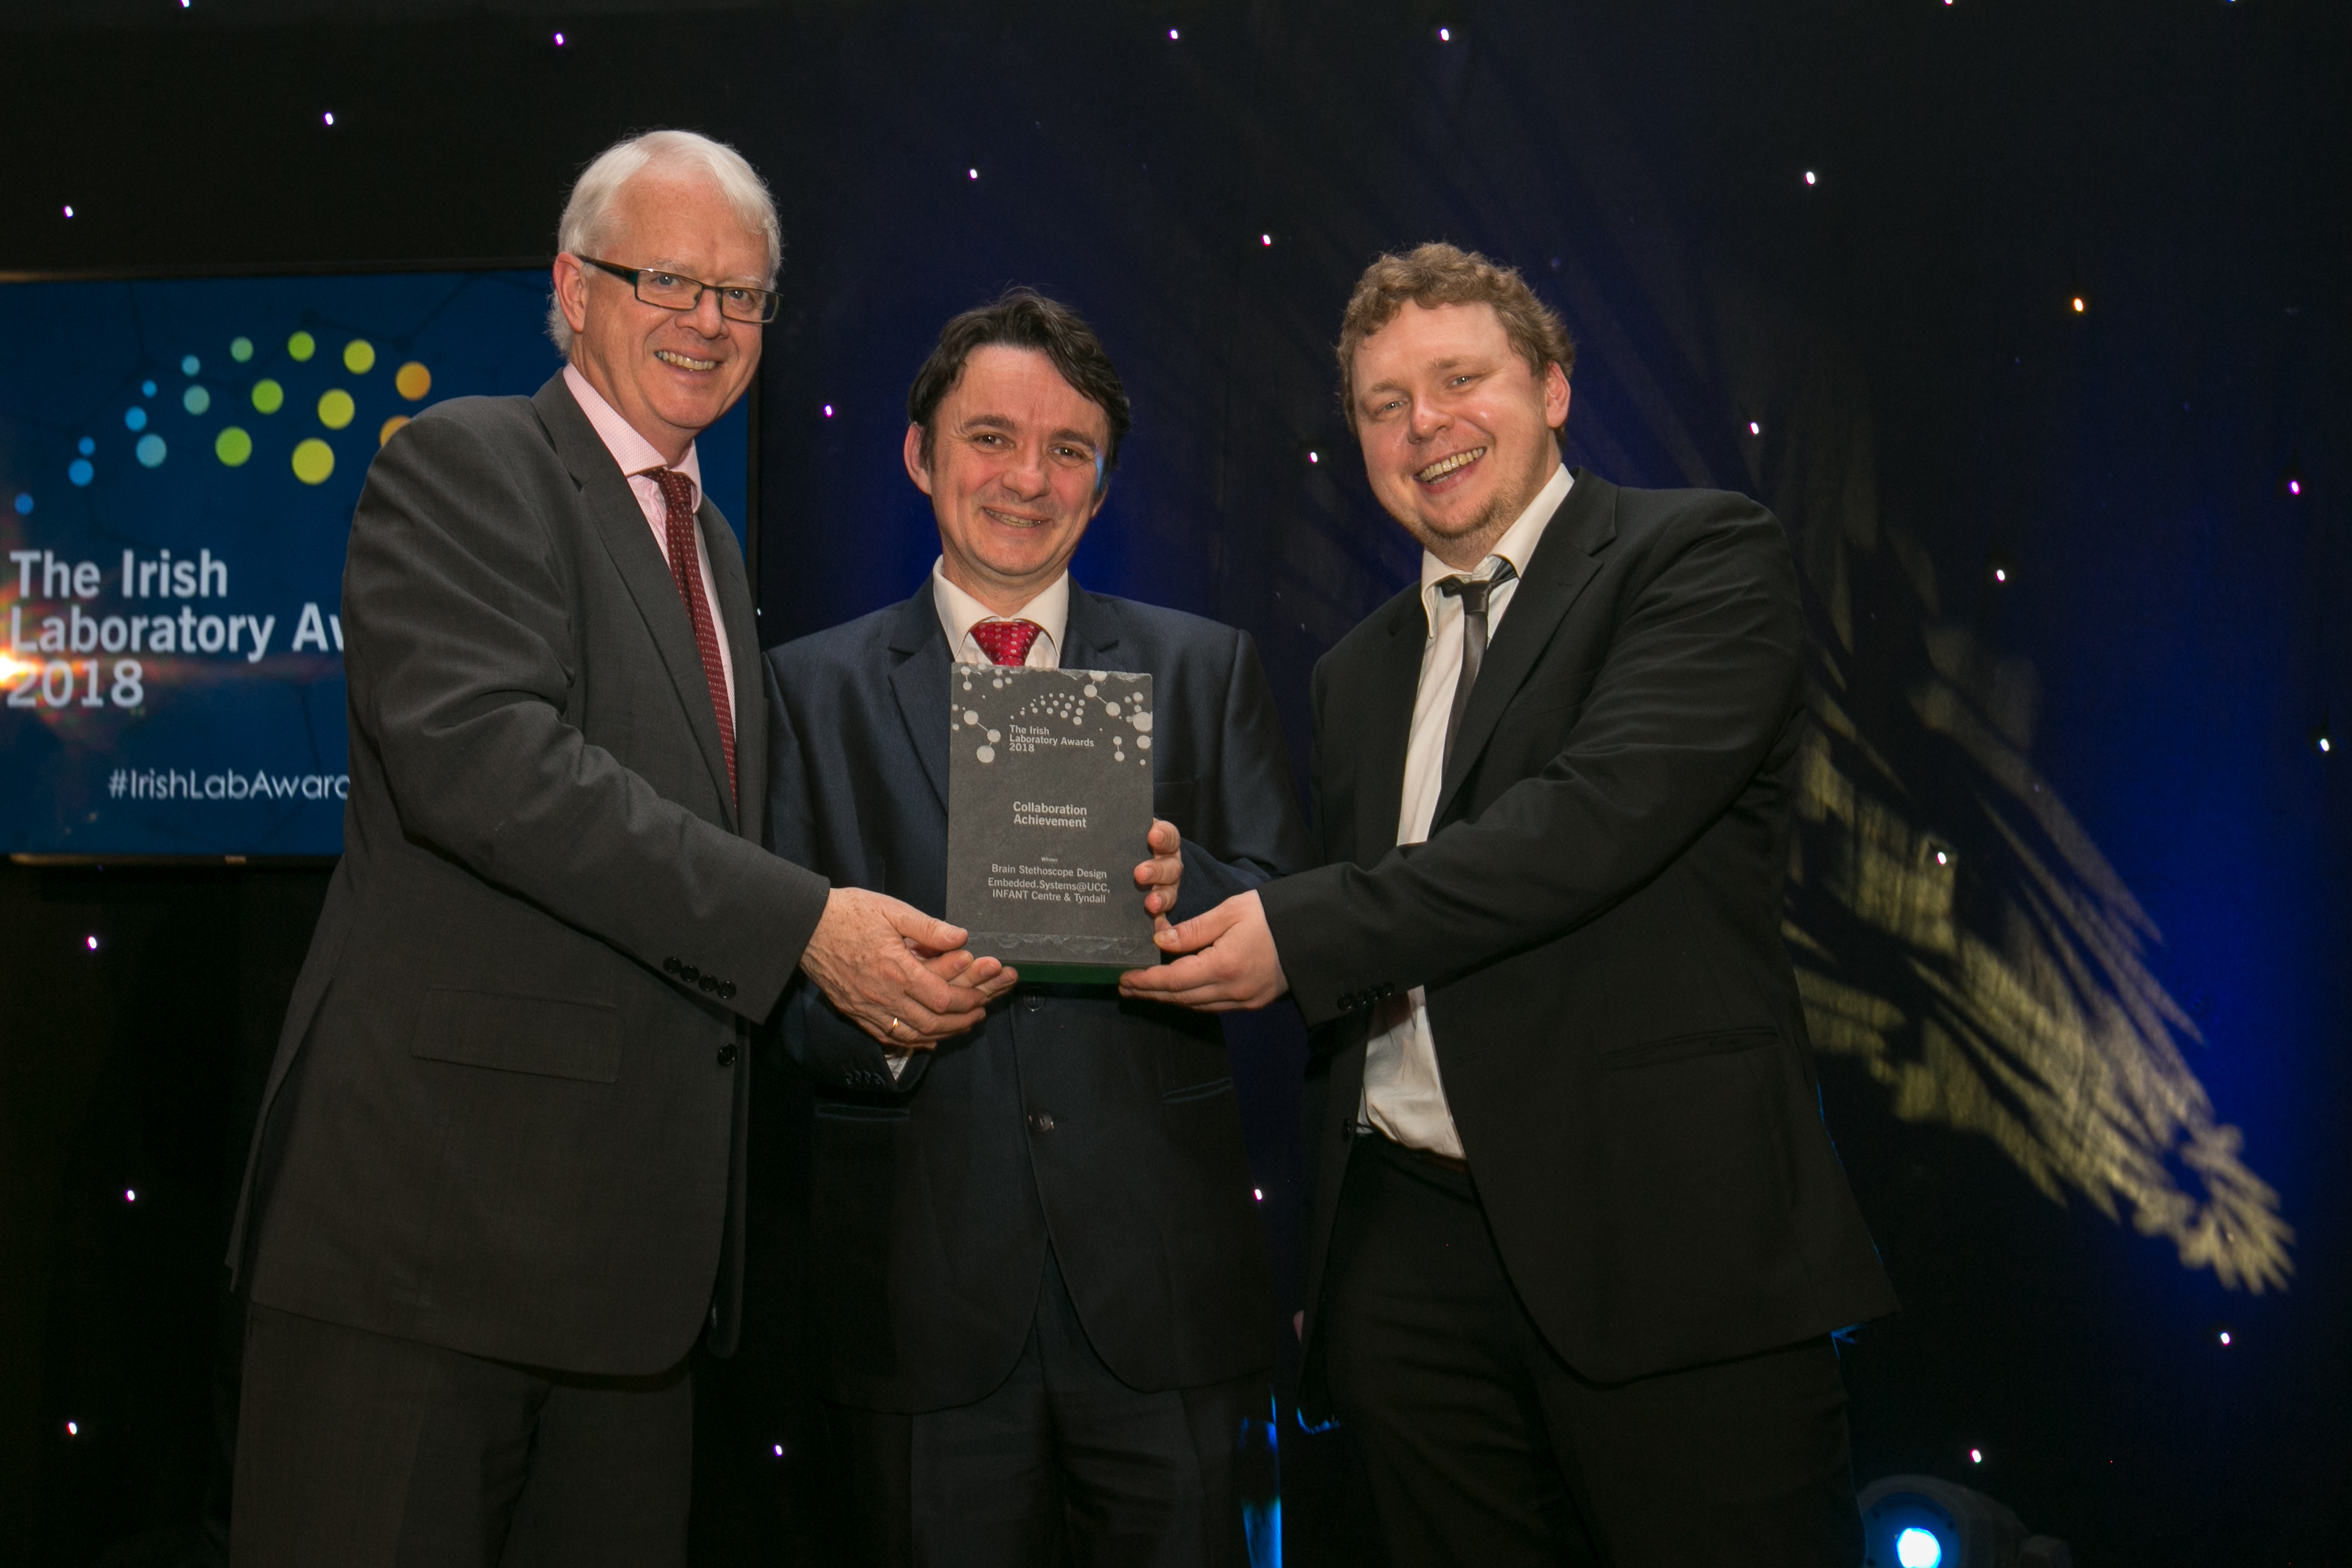 Embedded.Systems@UCC and the SFI Infant Centre win Collaboration Achievement award